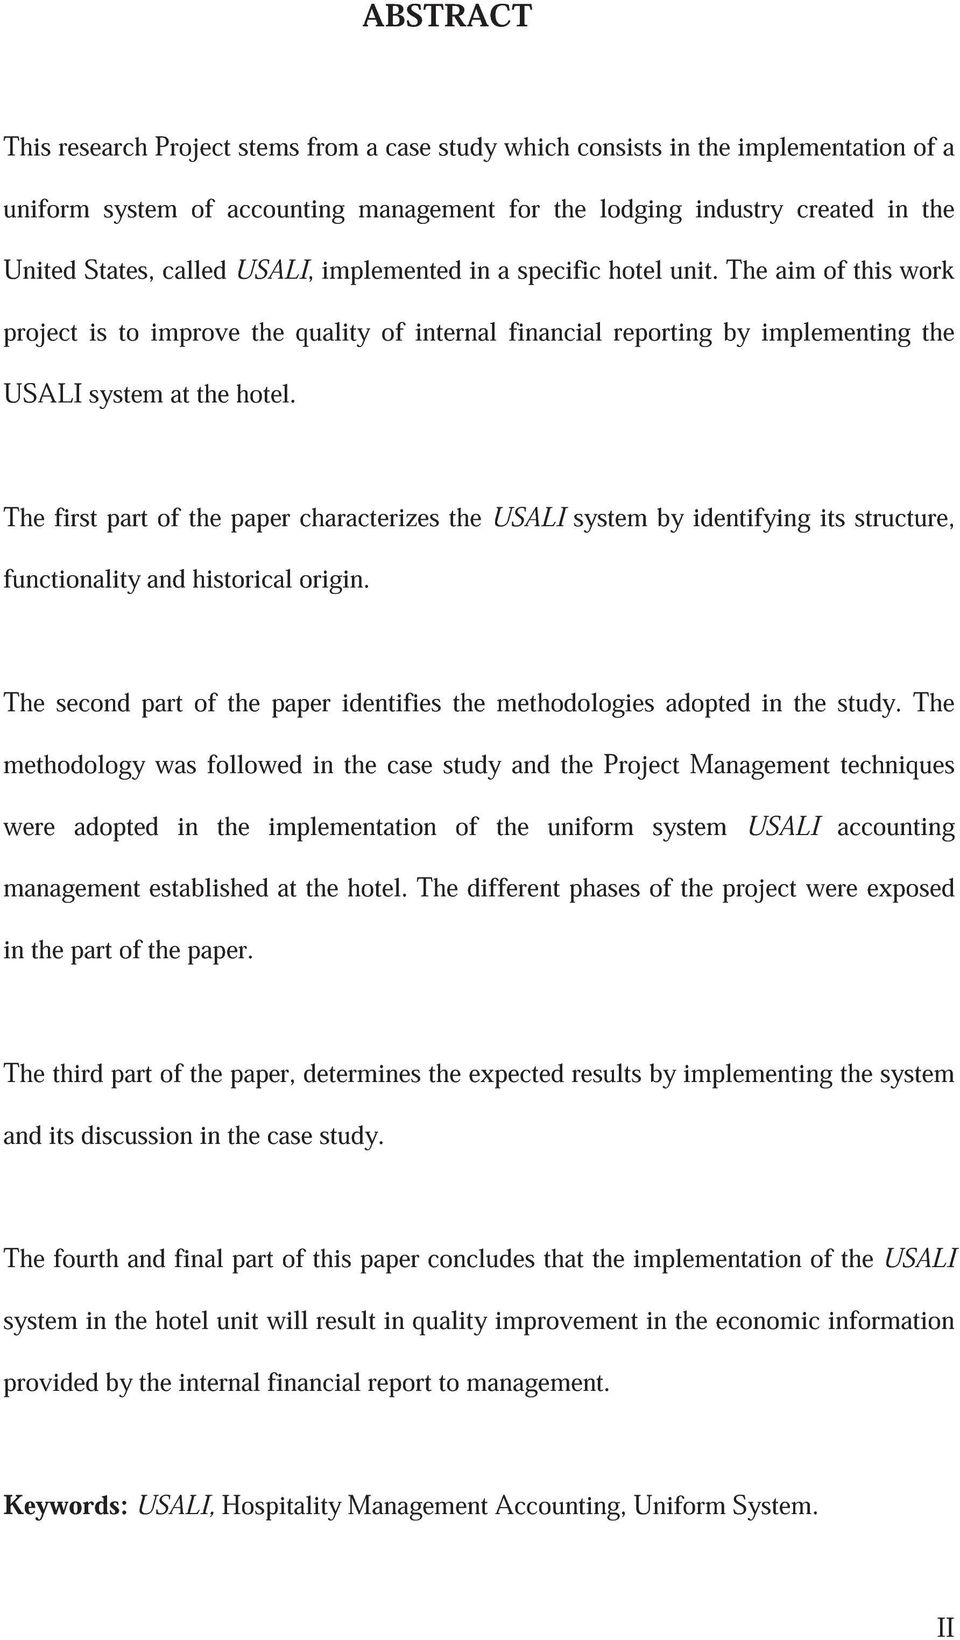 The first part of the paper characterizes the USALI system by identifying its structure, functionality and historical origin.